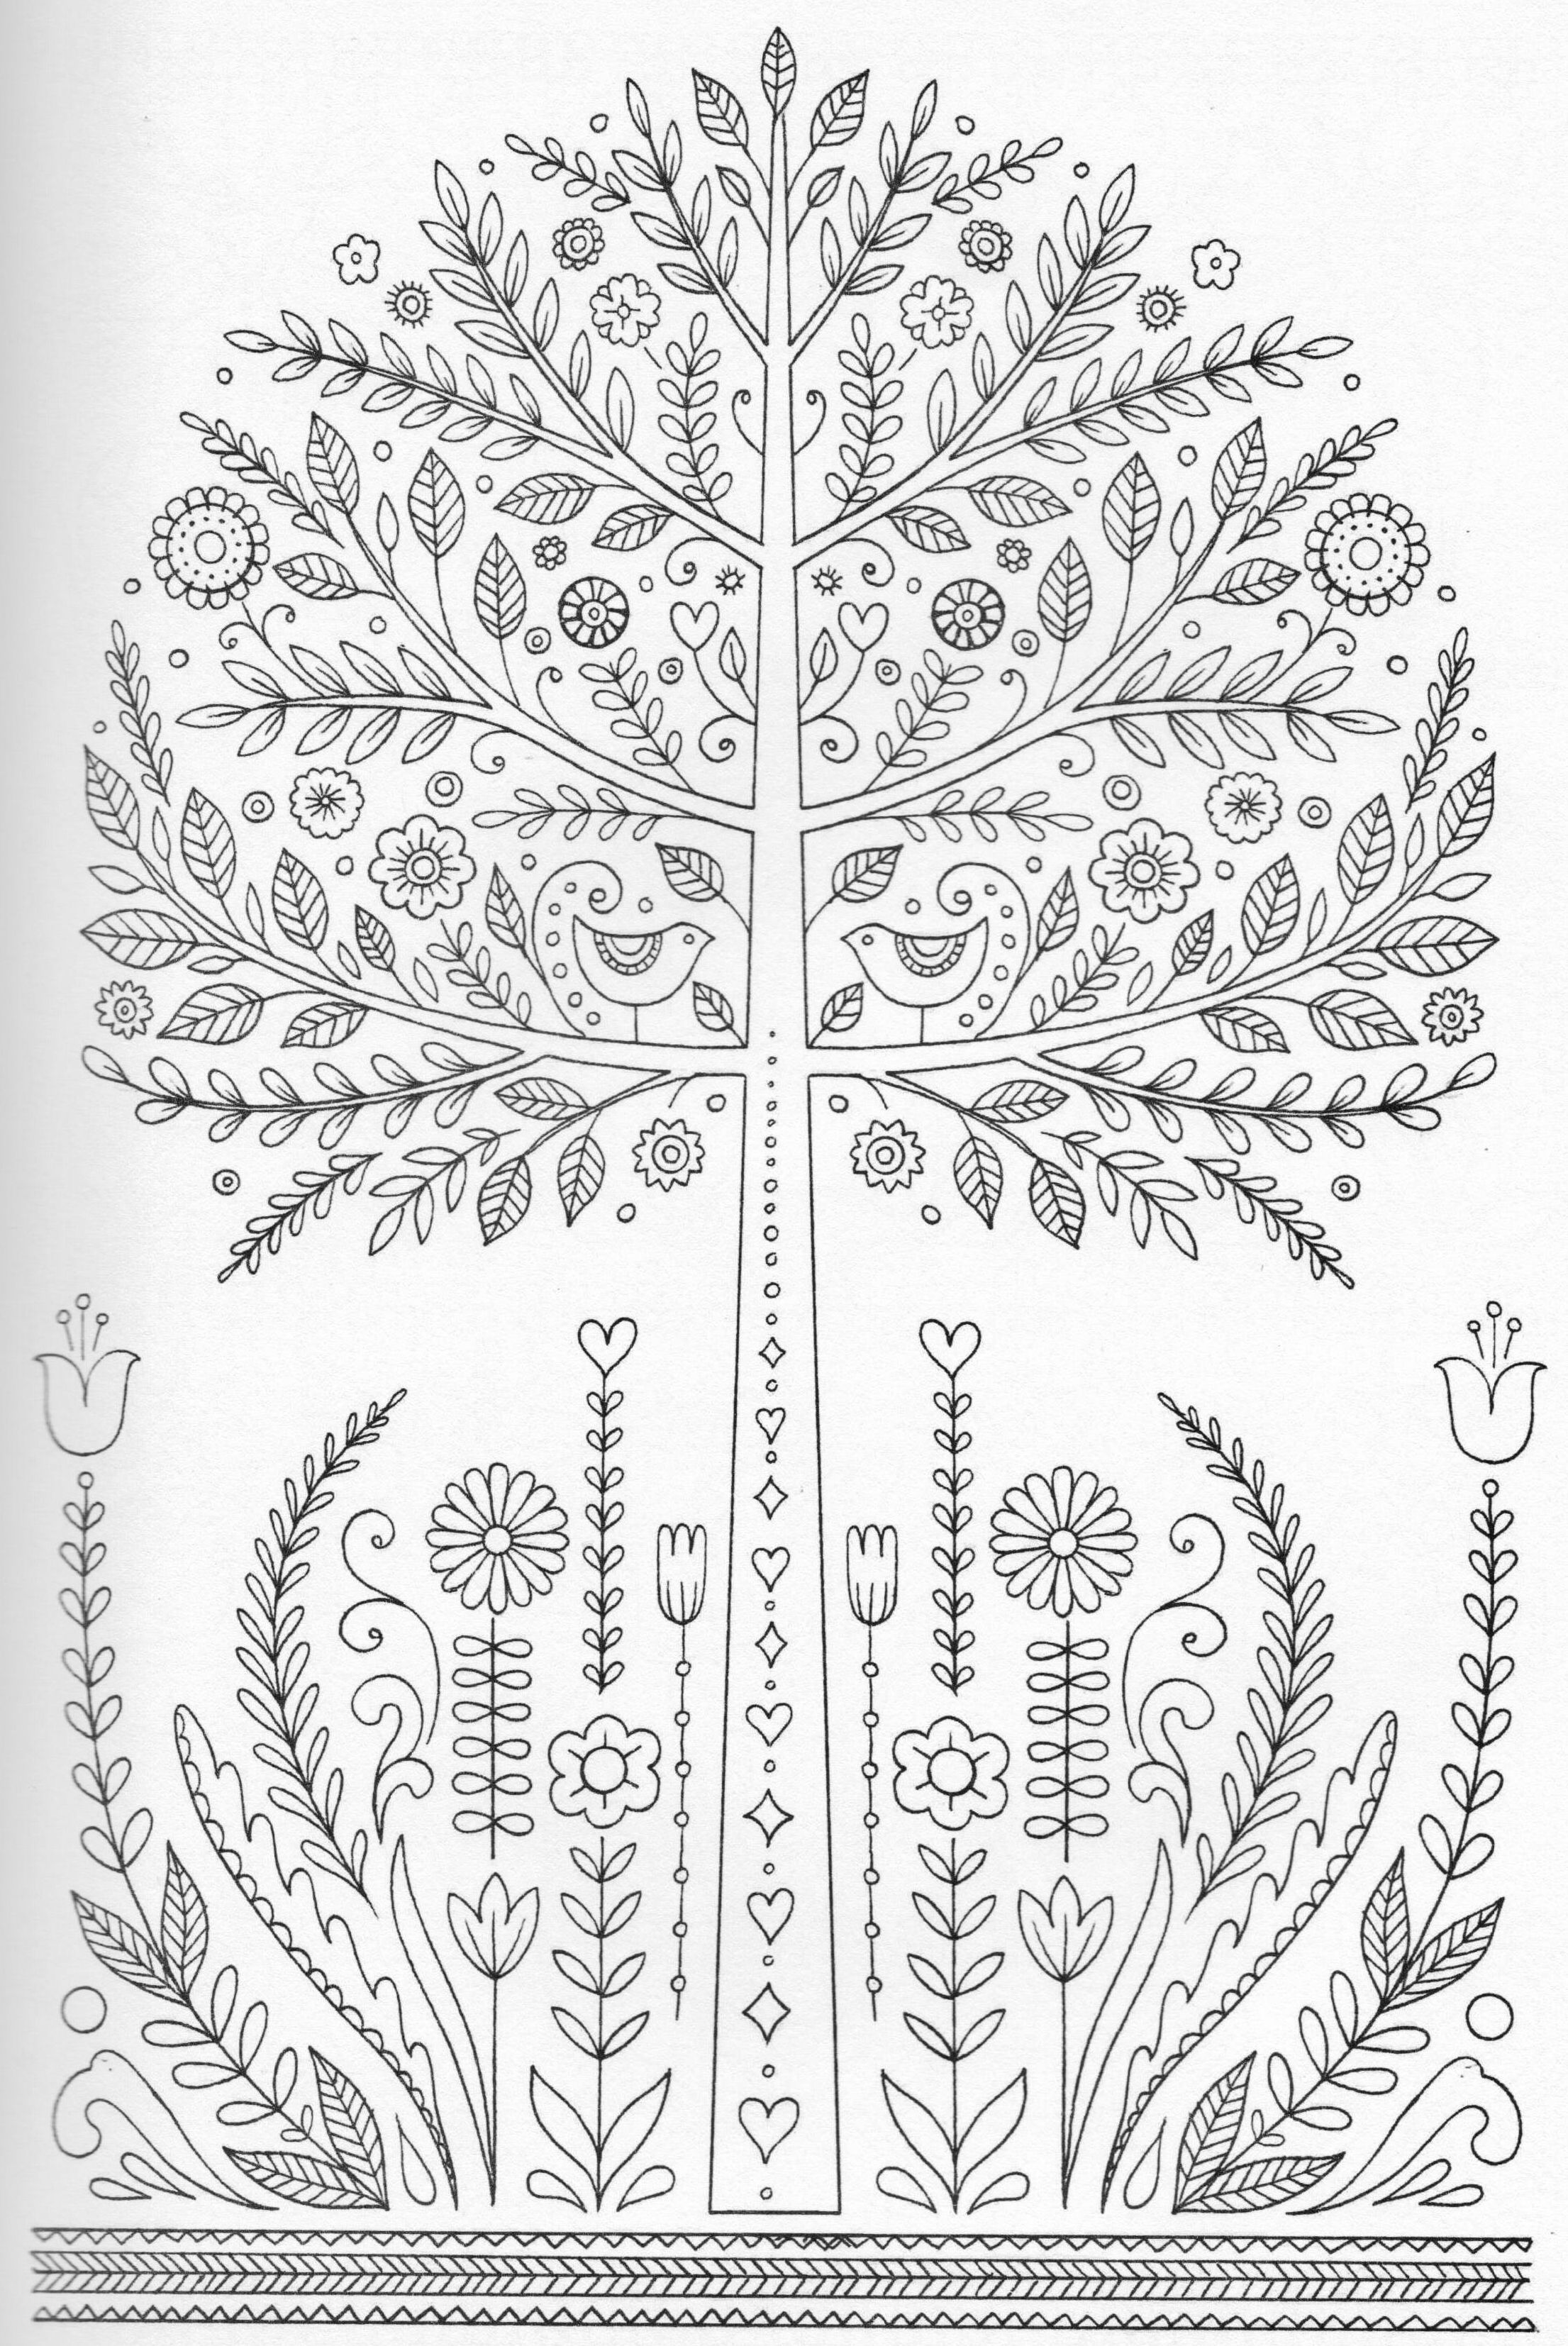 Pin by deanna lea on color plants pinterest coloriage coloriage adulte and colorier - Dessin vegetation ...